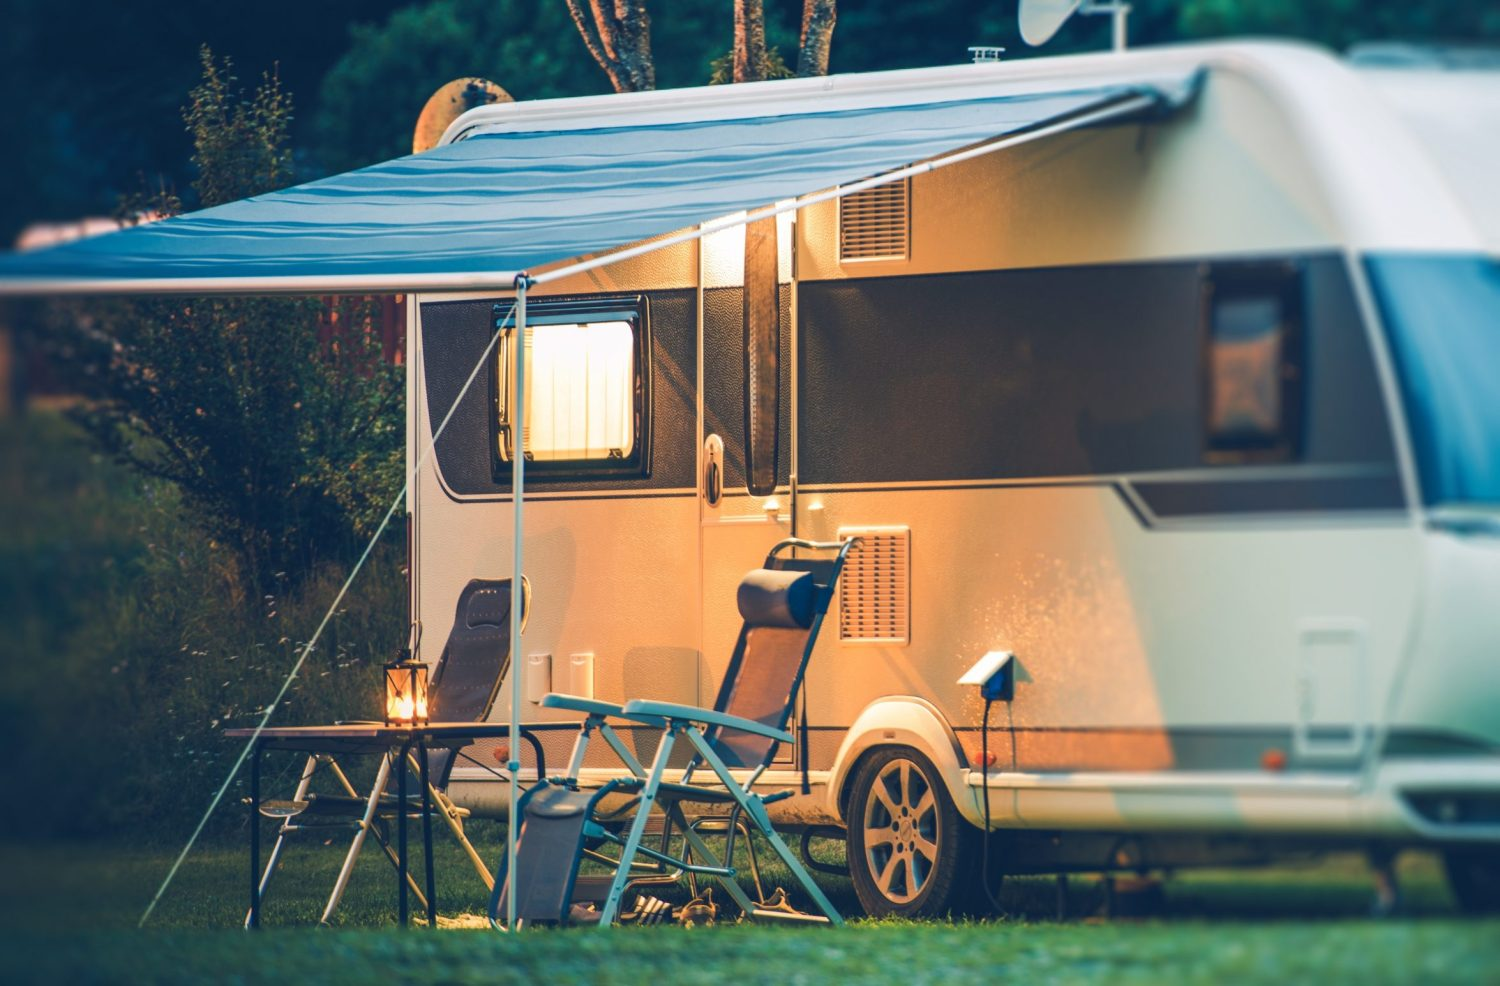 Caravan with awning cover